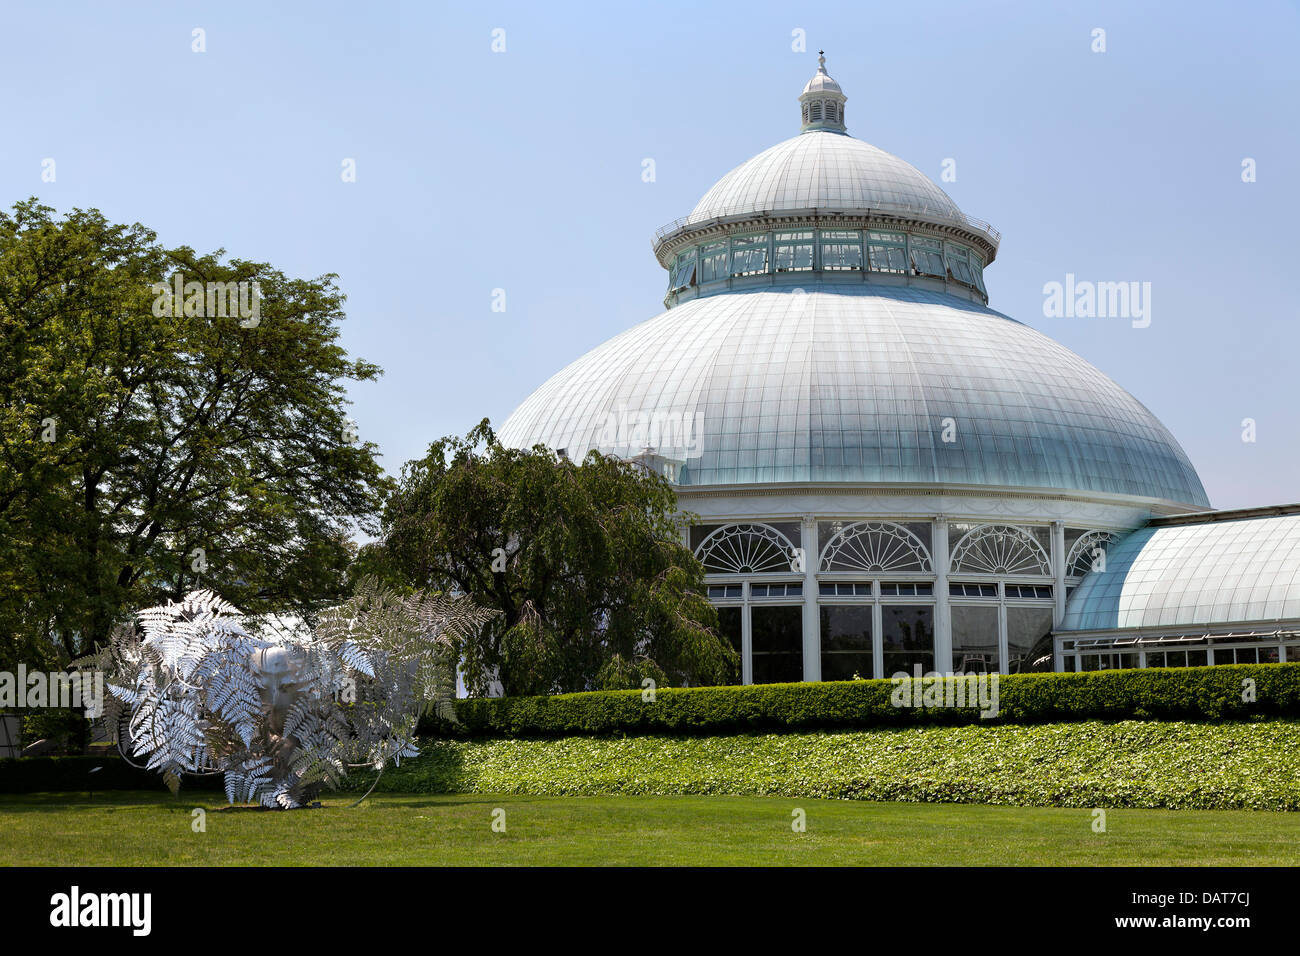 The Enid A. Haupt Conservatory of the Botanical Garden in the Bronx, New York City - Stock Image